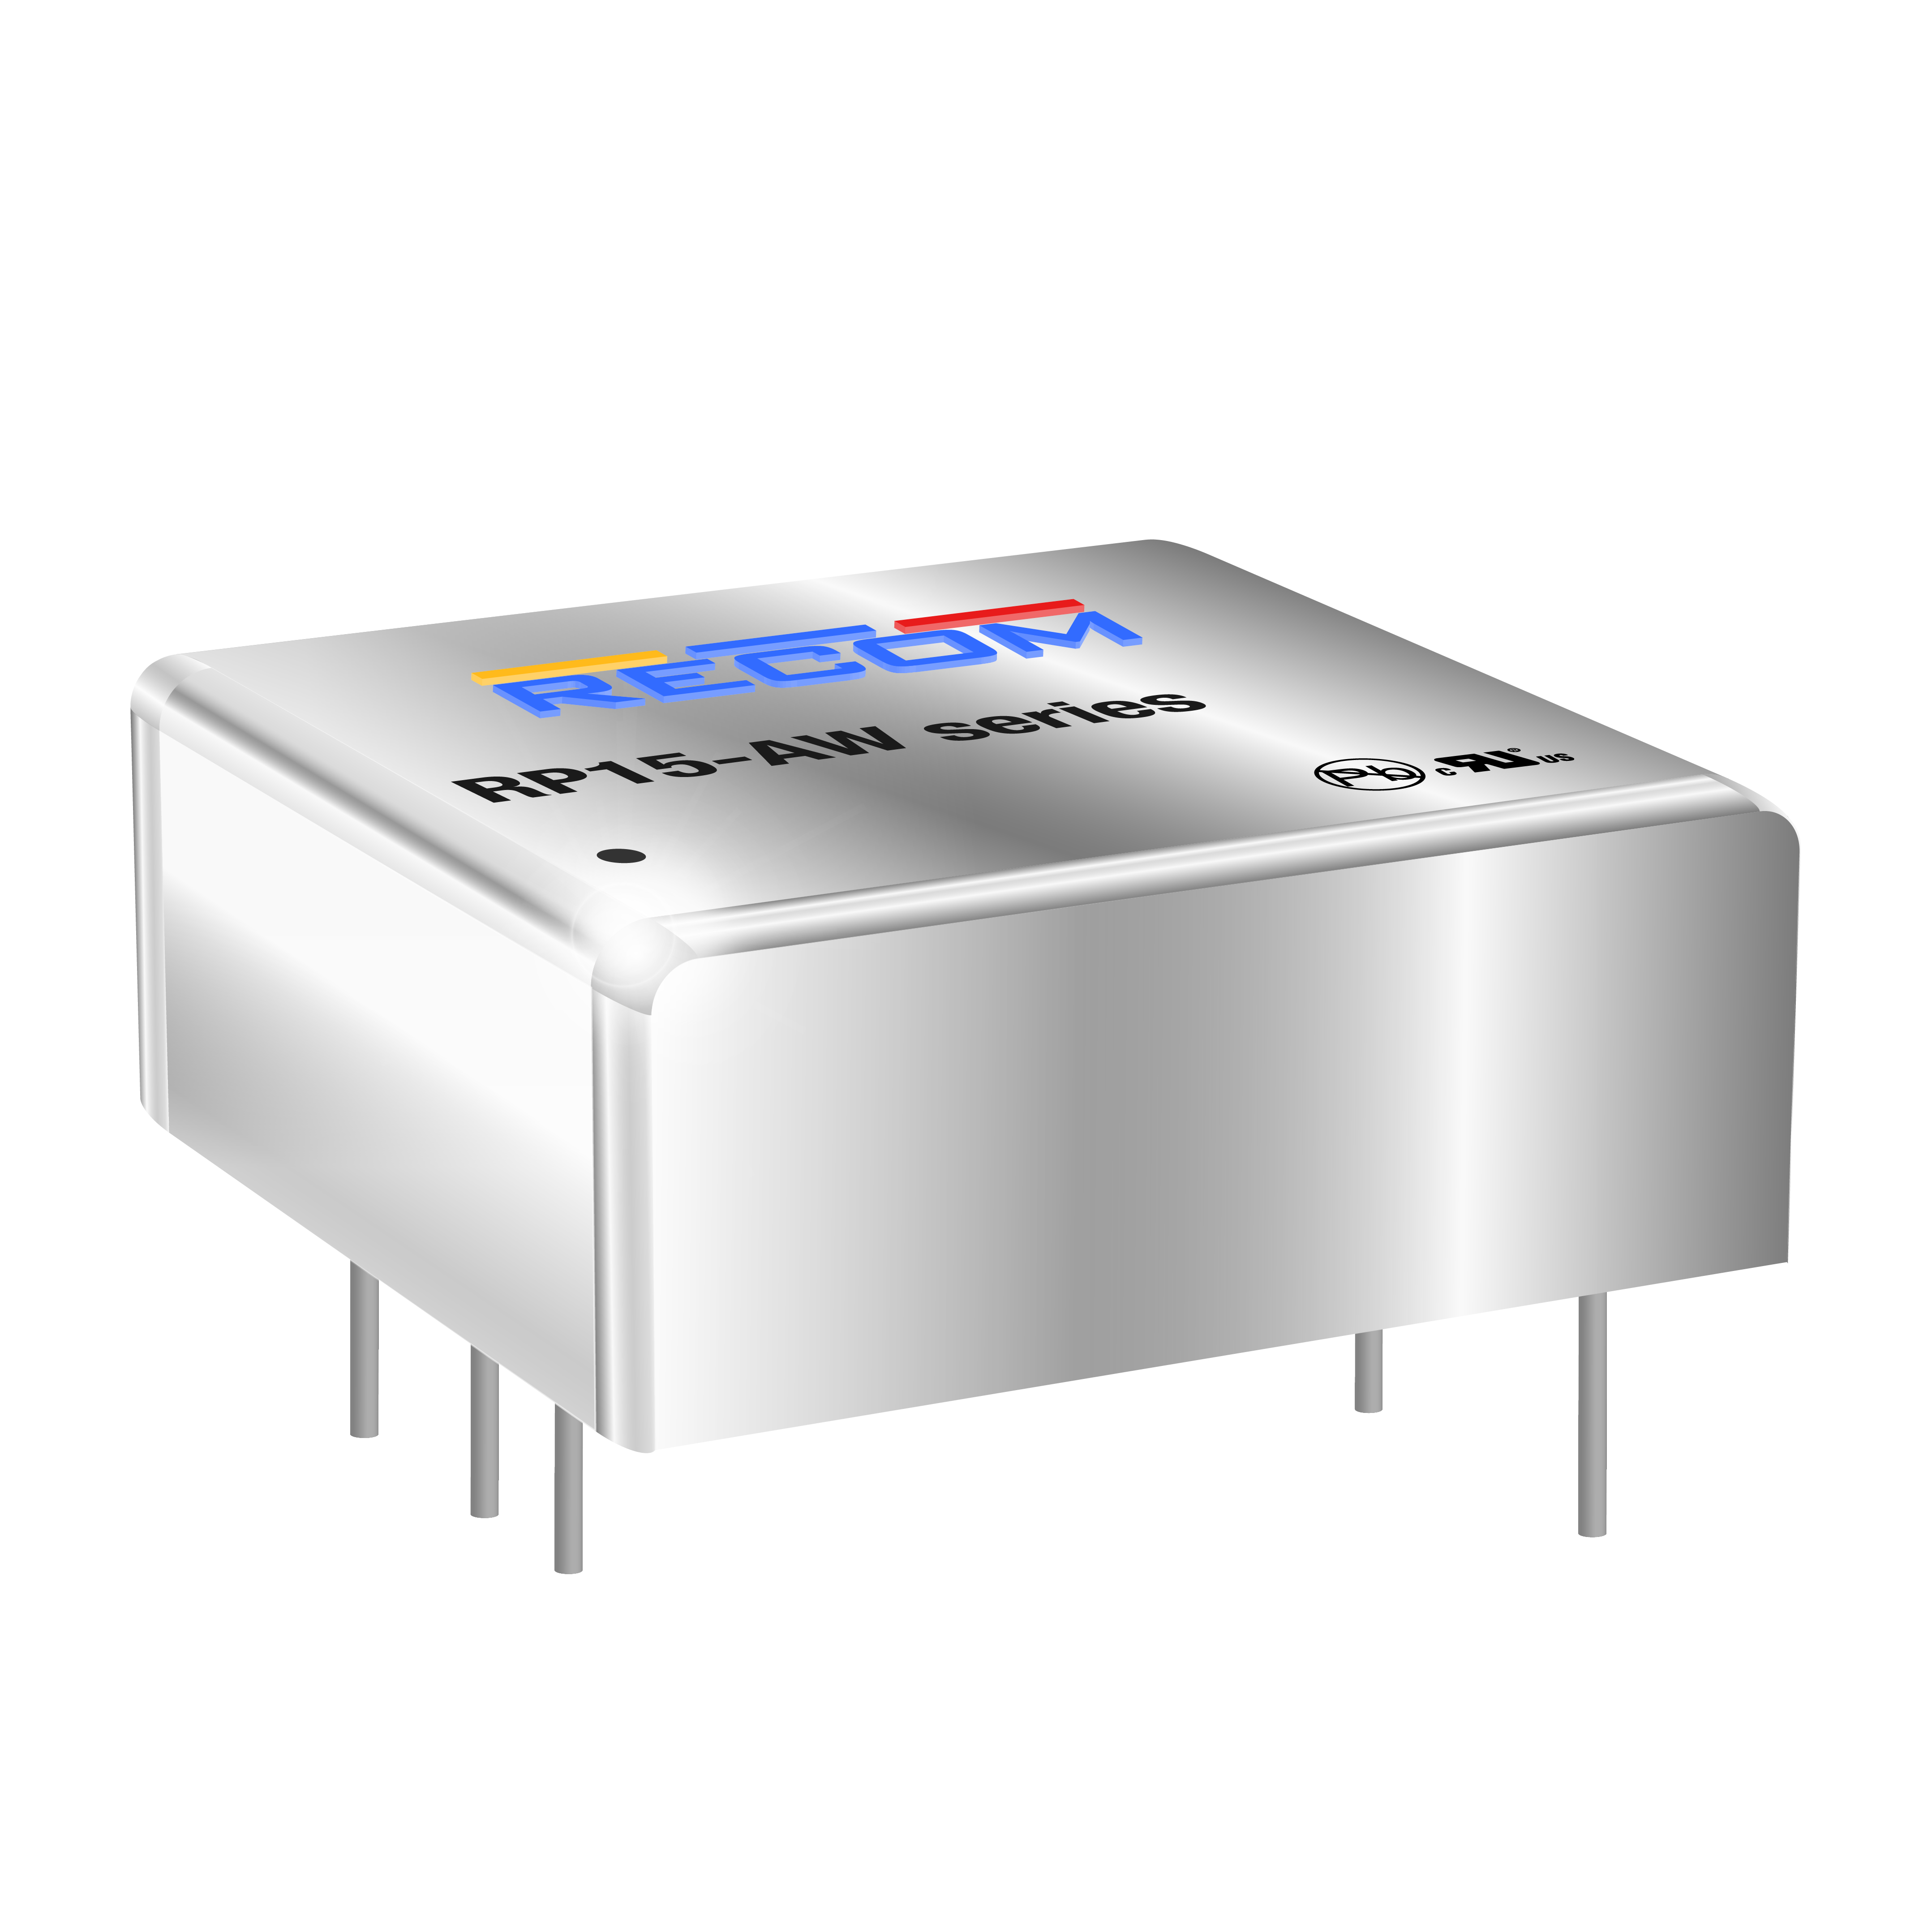 Power Products Voltage Converters, Inverters, Transformers DC-DC Converters RP15-2405SAW by Recom Power